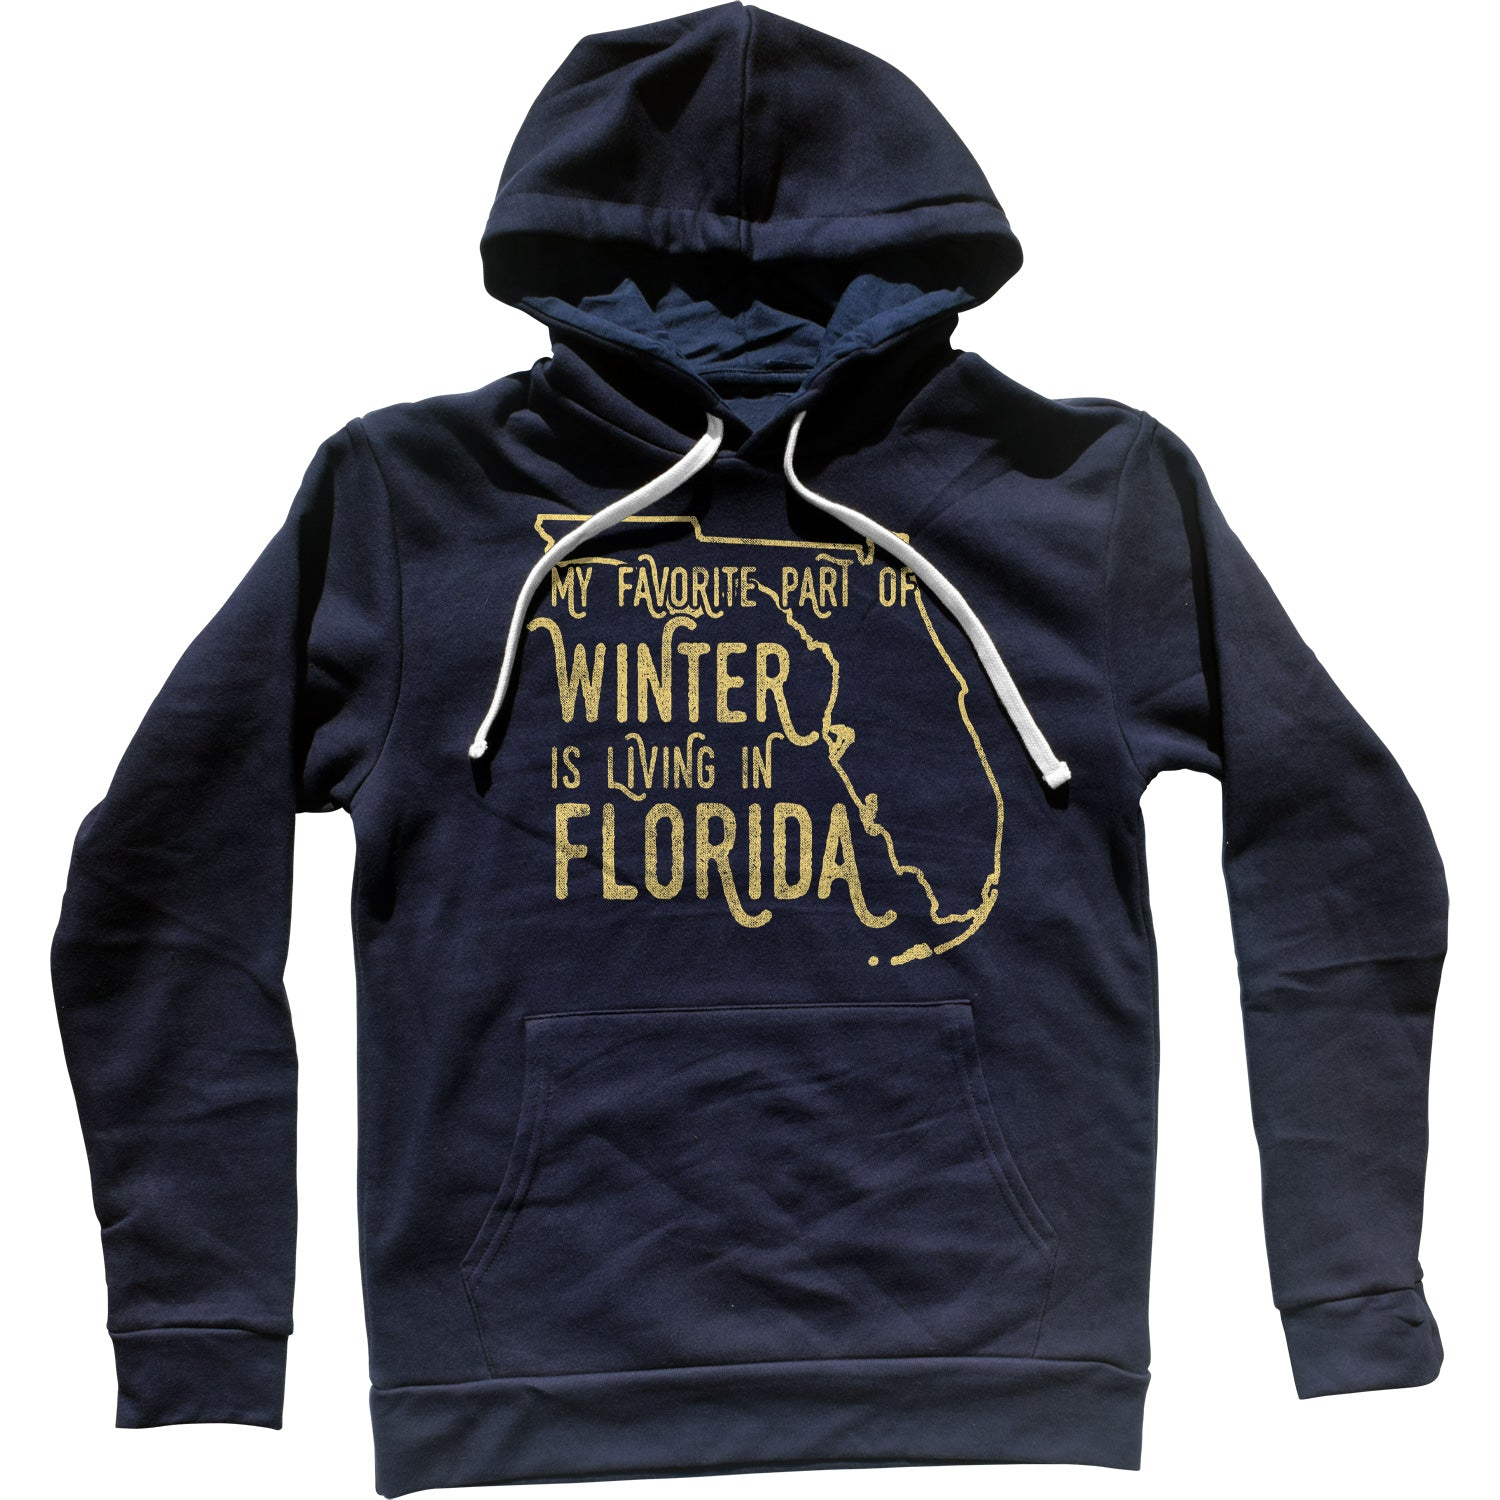 Home Florida Sunshine State State Pride Tallahassee Jacksonville Hoodie Pullover